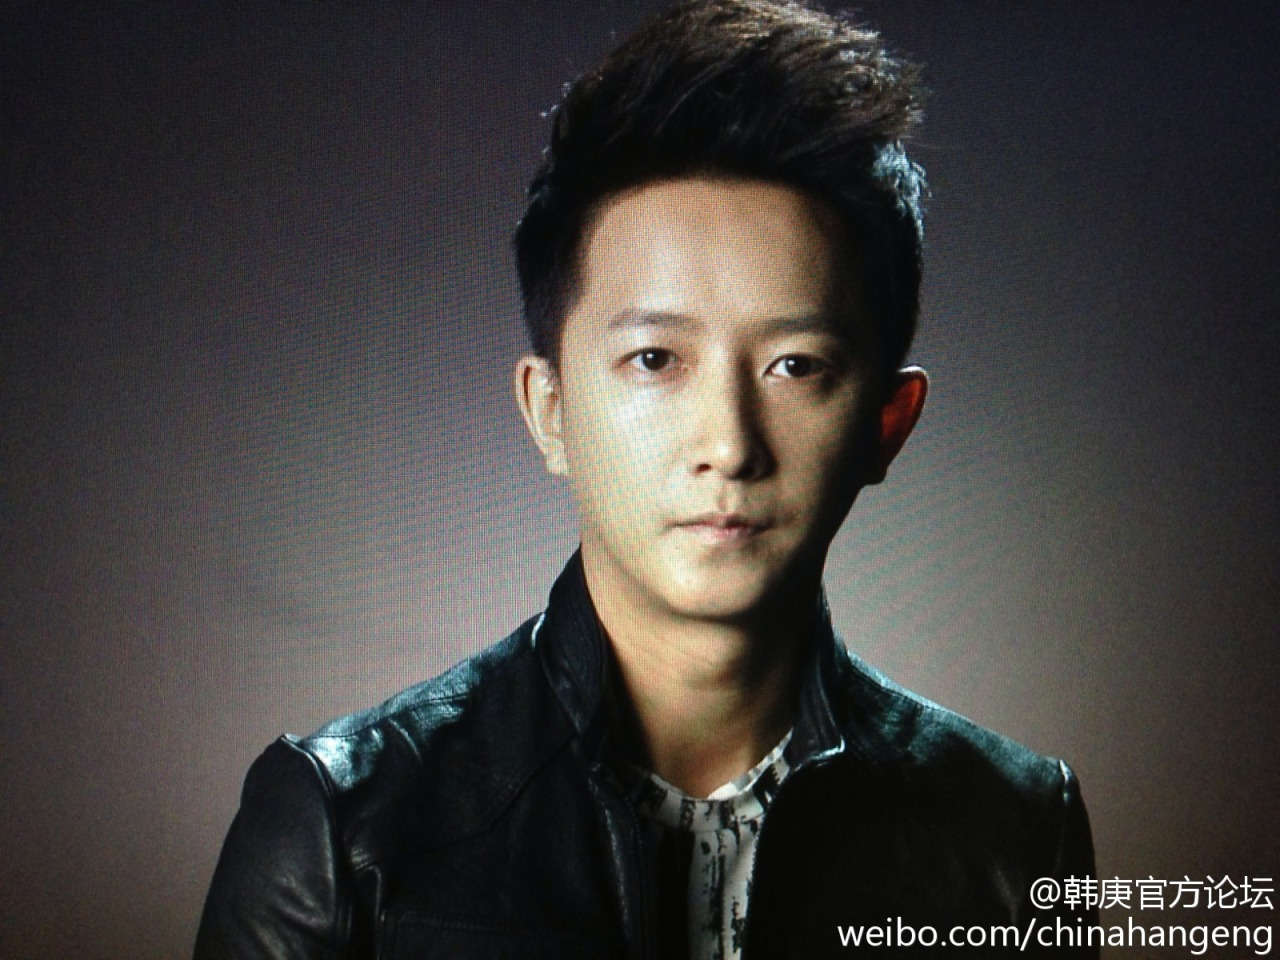 gengbaonet:  Han Geng recording for MTV EXIT | cr: chinahangeng  Han Geng recorded public service announcements for MTV EXIT's anti-trafficking campaign.